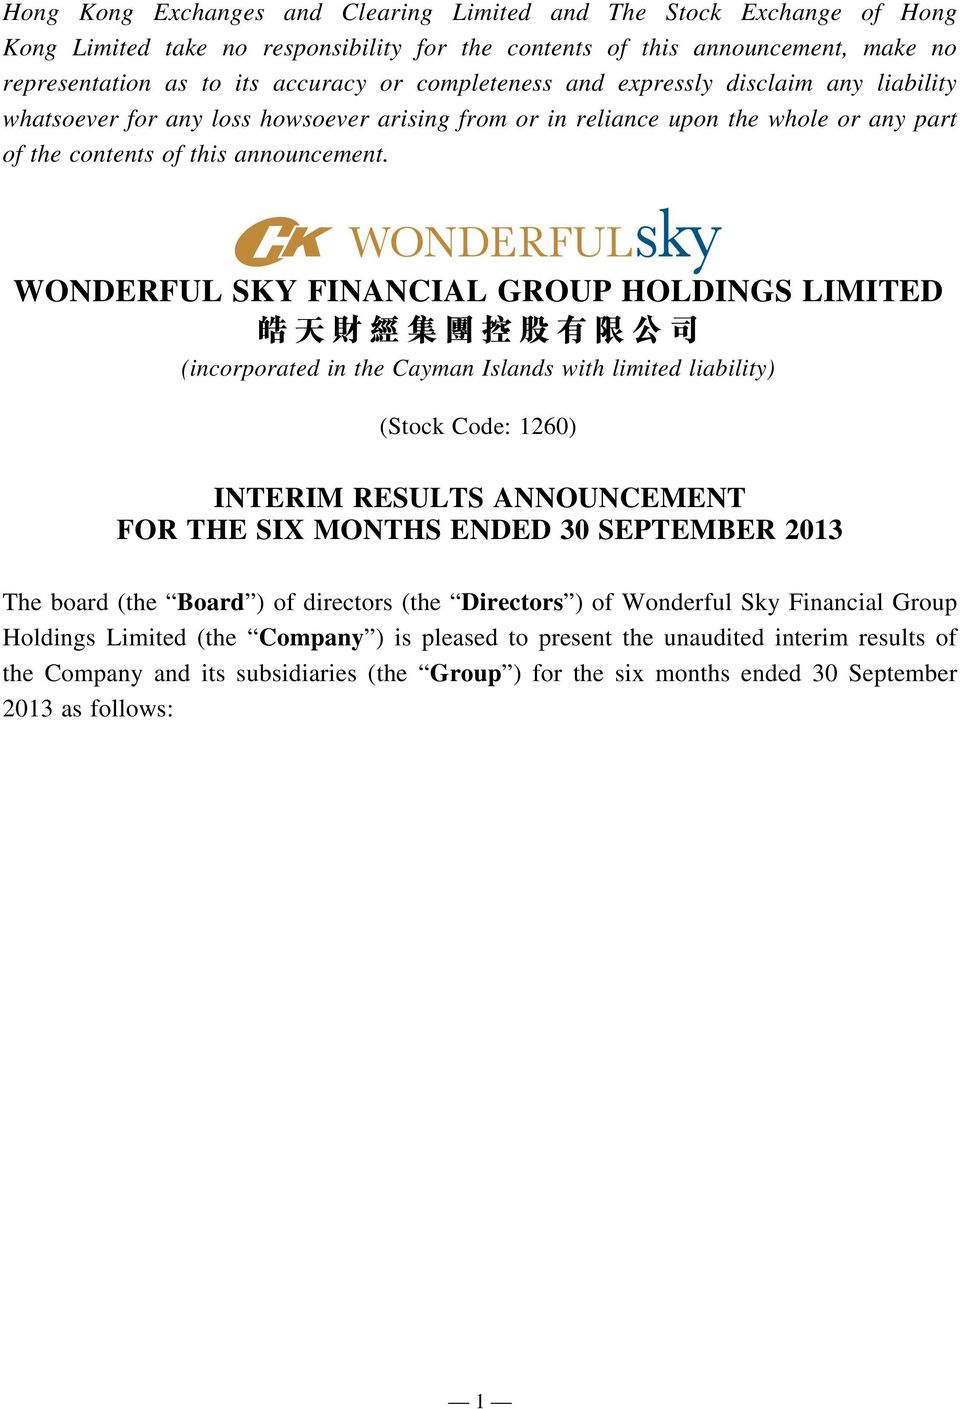 WONDERFUL SKY FINANCIAL GROUP HOLDINGS LIMITED (incorporated in the Cayman Islands with limited liability) (Stock Code: 1260) INTERIM RESULTS ANNOUNCEMENT FOR THE SIX MONTHS ENDED 30 SEPTEMBER 2013